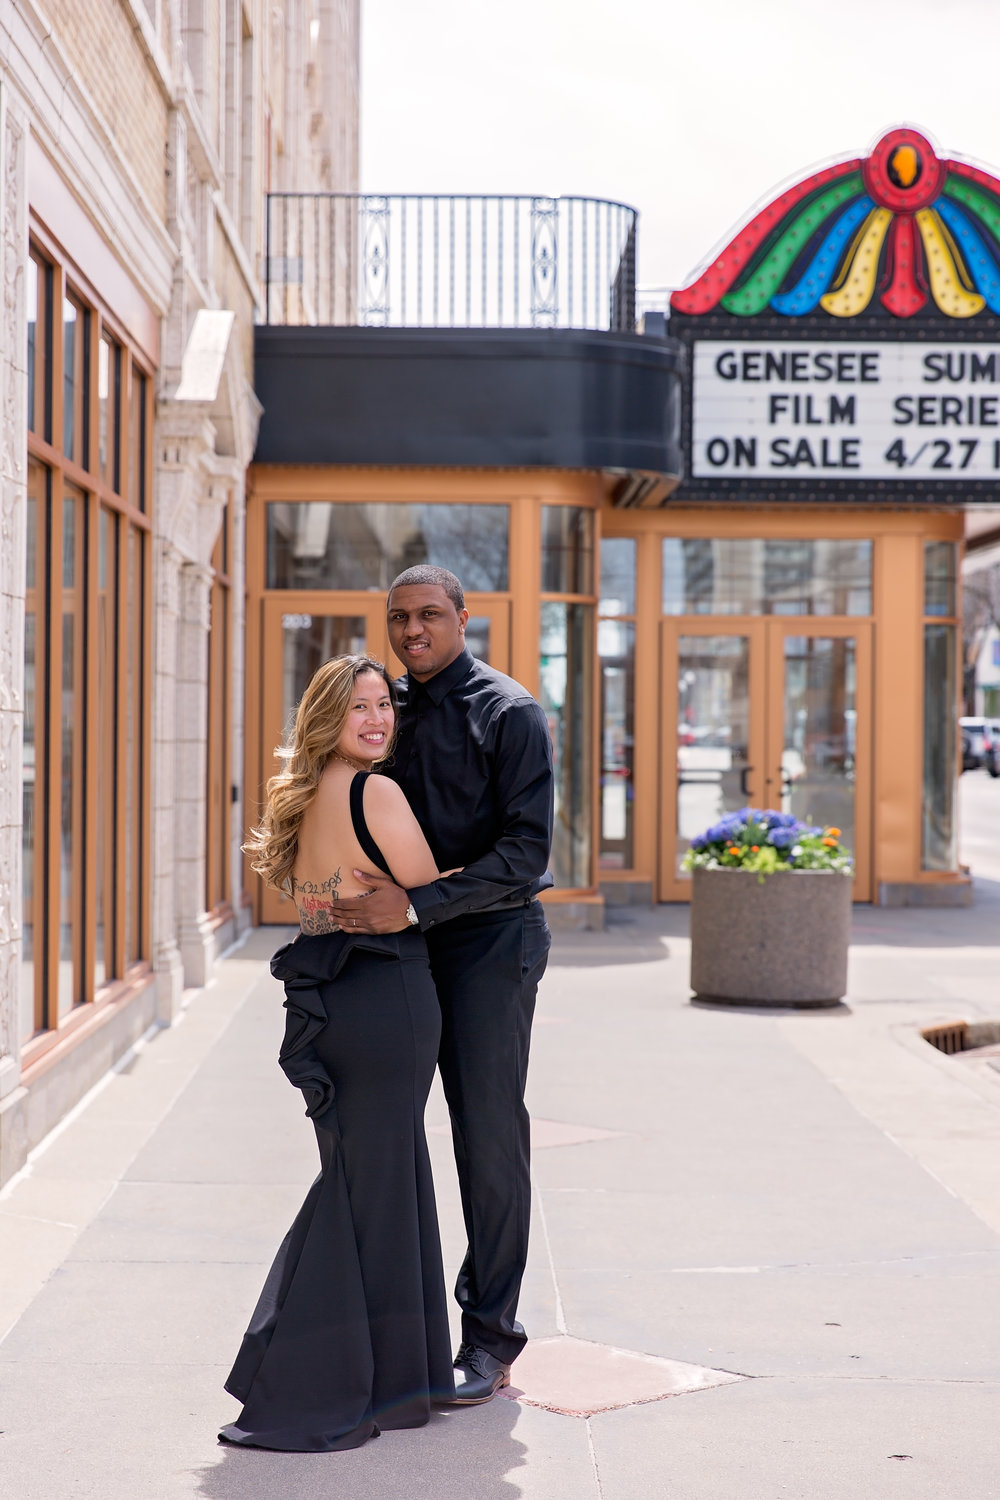 married couple posing on city street